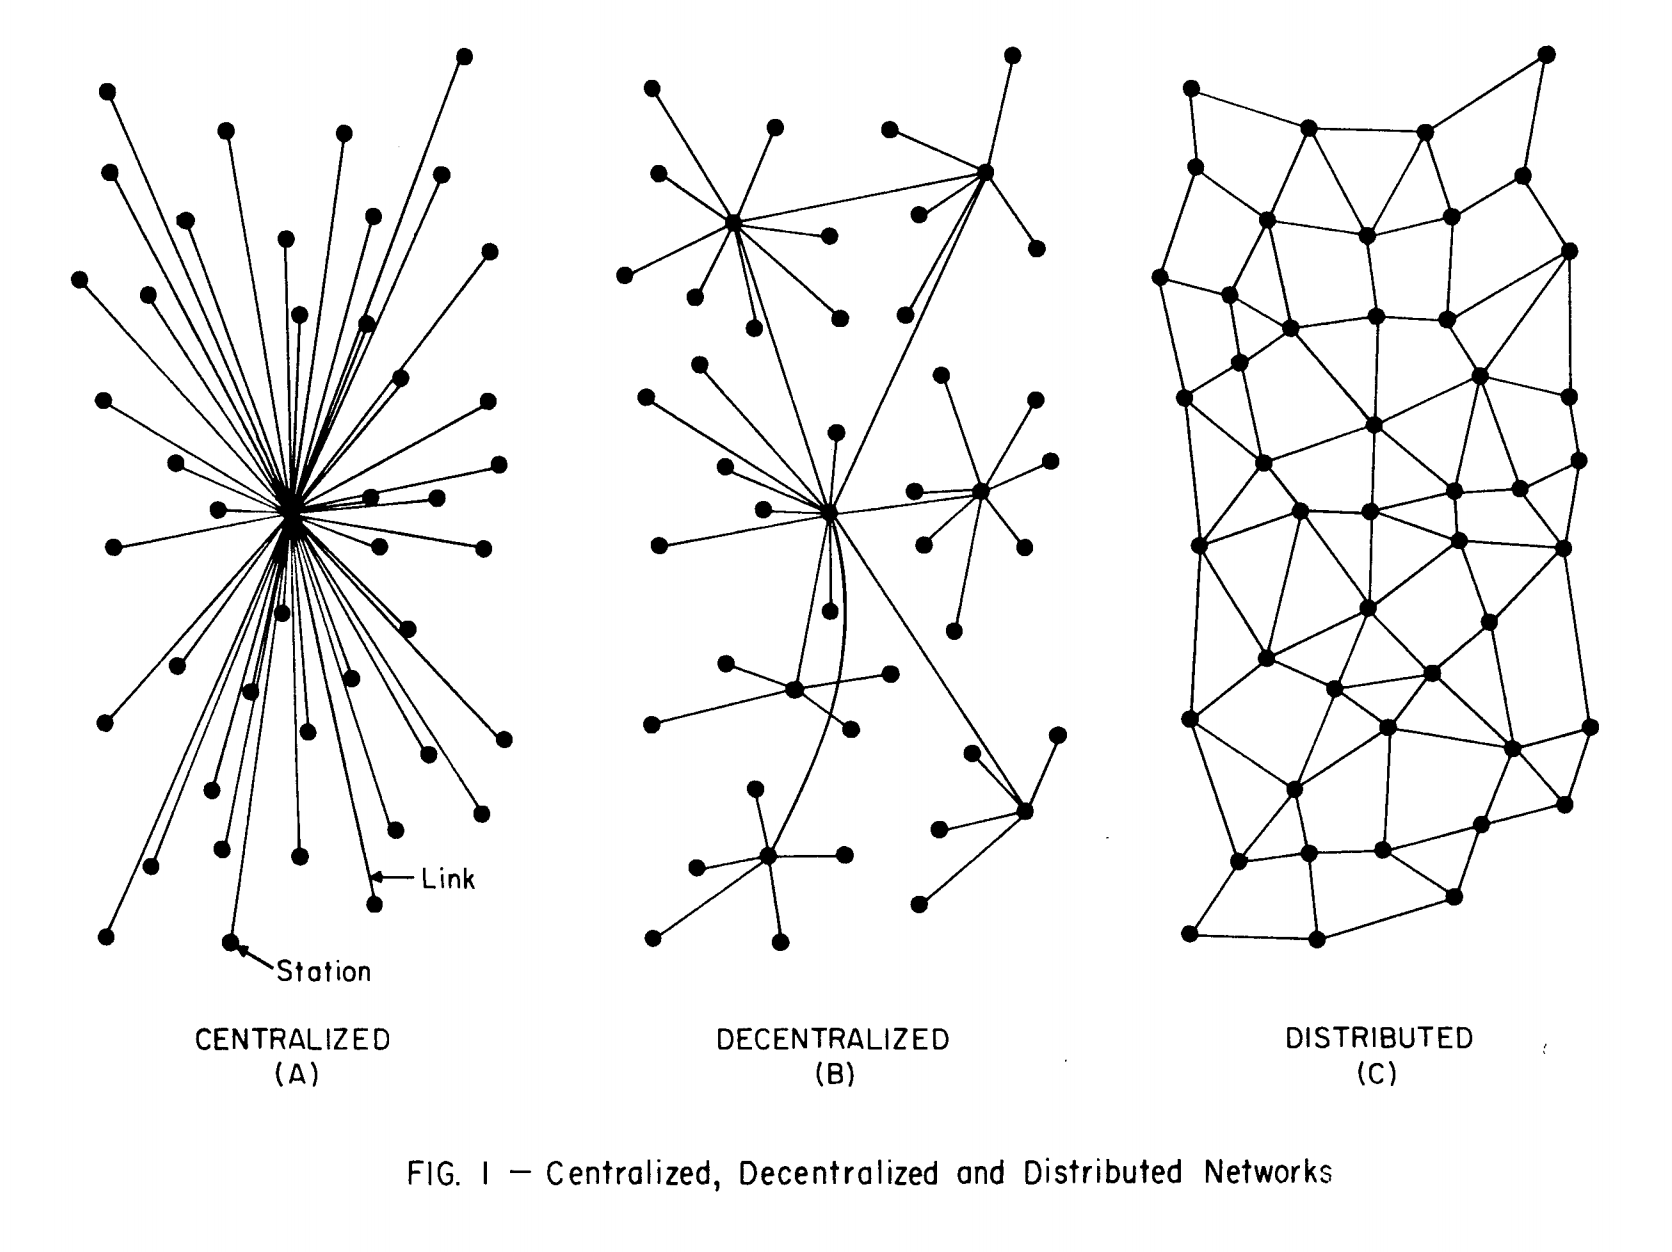 (Or centralized, federated, peer-to-peer. Jay Graber, 2020, https://medium.com/decentralized-web/decentralized-social-networks-e5a7a2603f53)